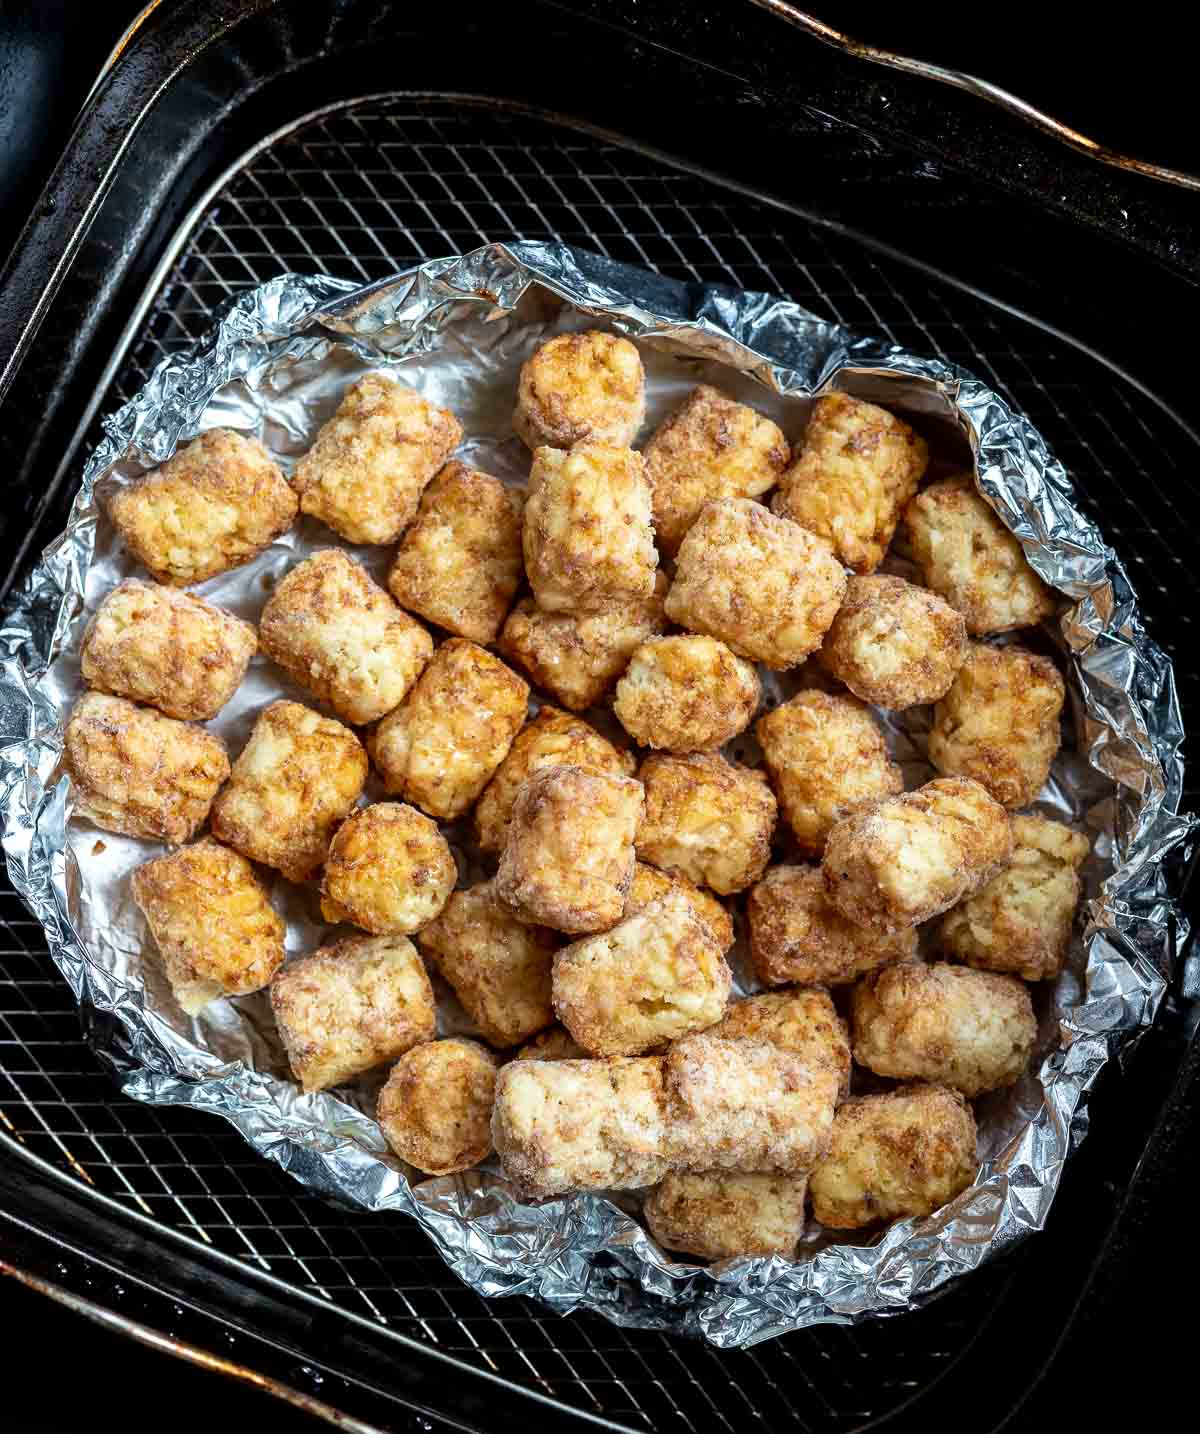 frozen tater tots in air fryer basket